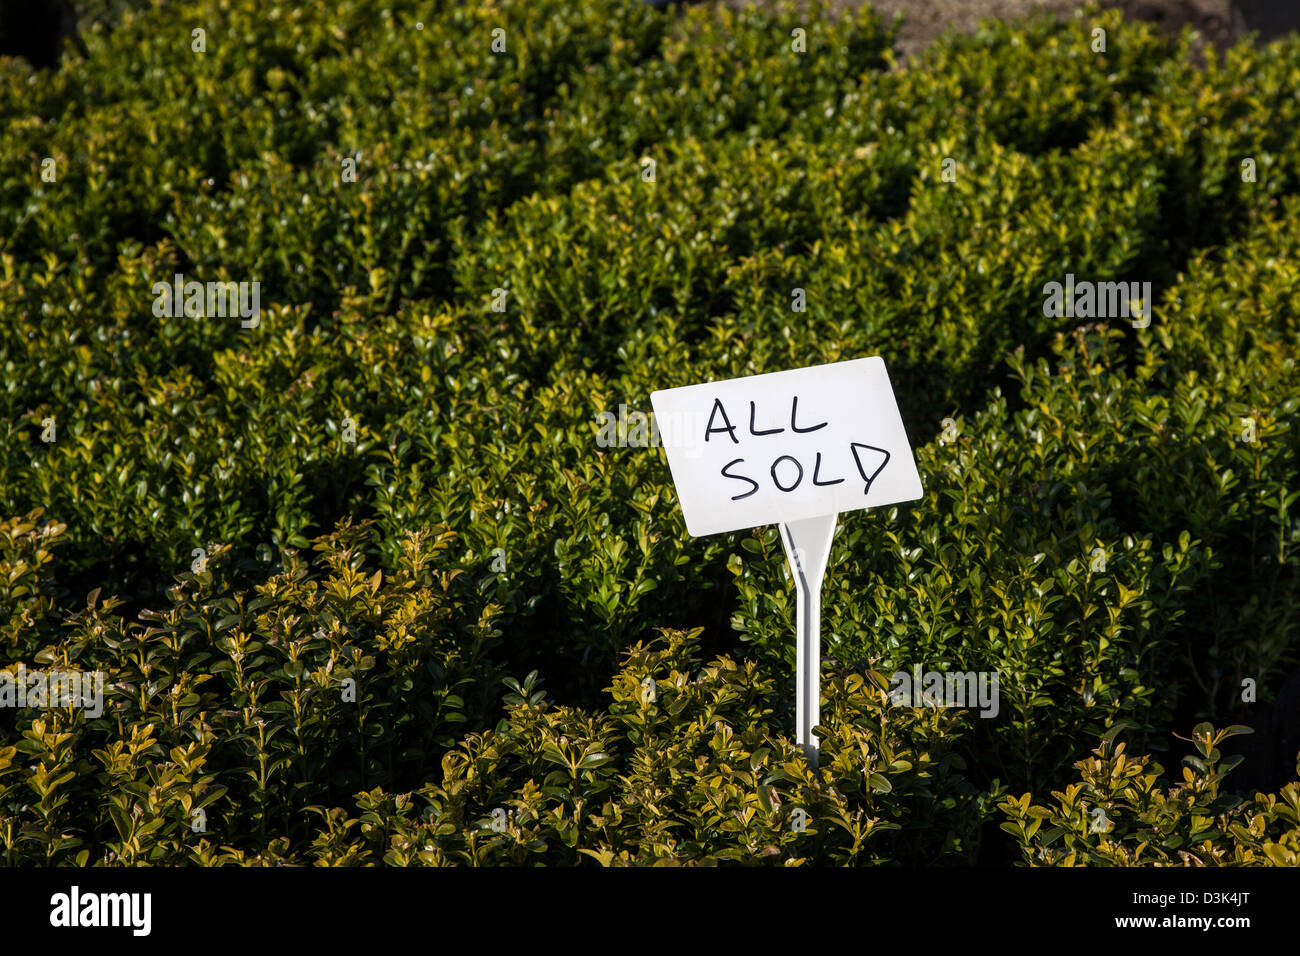 All Sold _ Box plants sold in J Jones Nursery in Southport, Merseyside, UK - Stock Image